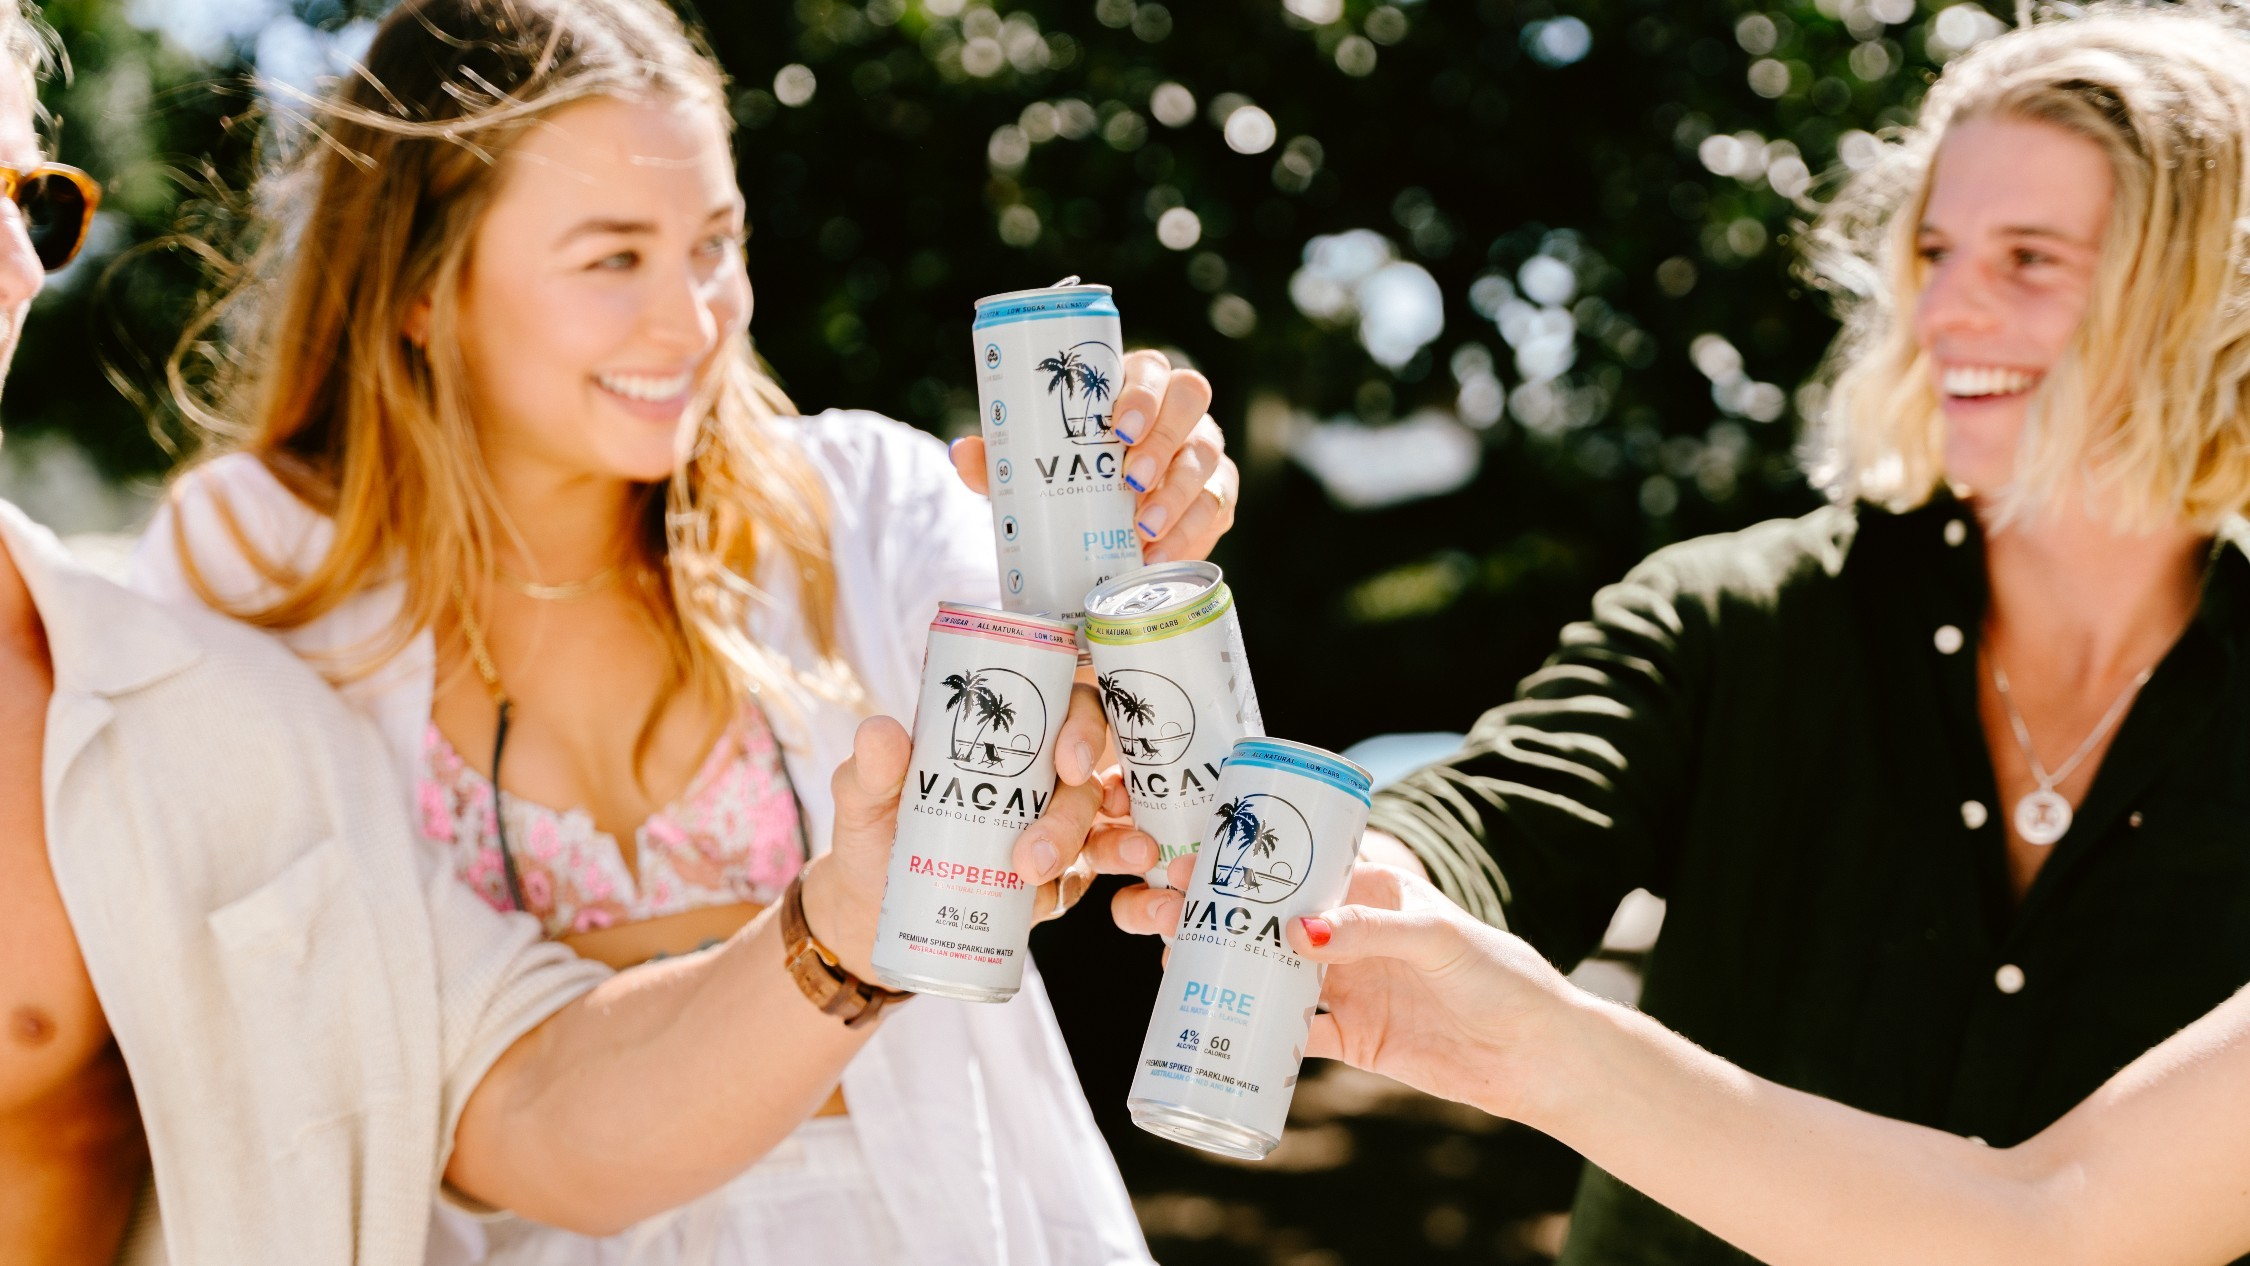 A group of people cheers together cans of hard seltzer in the sunshine.